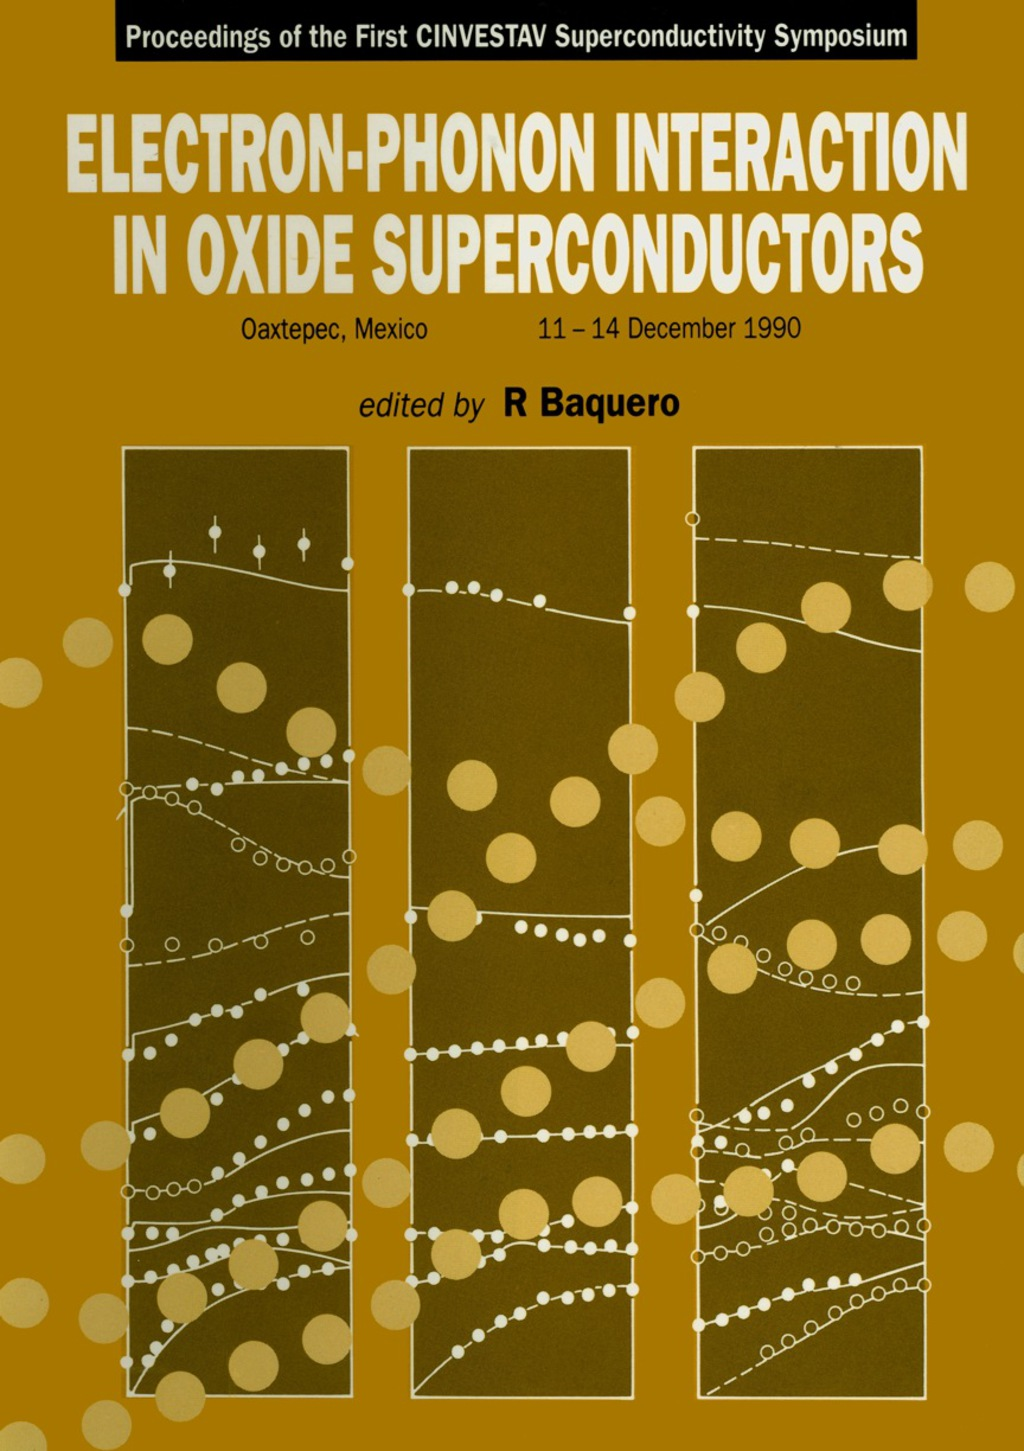 Electron-phonon Interaction In Oxide Superconductors - Proceedings Of The First Cinvestav Superconductivity Symposium (ebook) eBooks